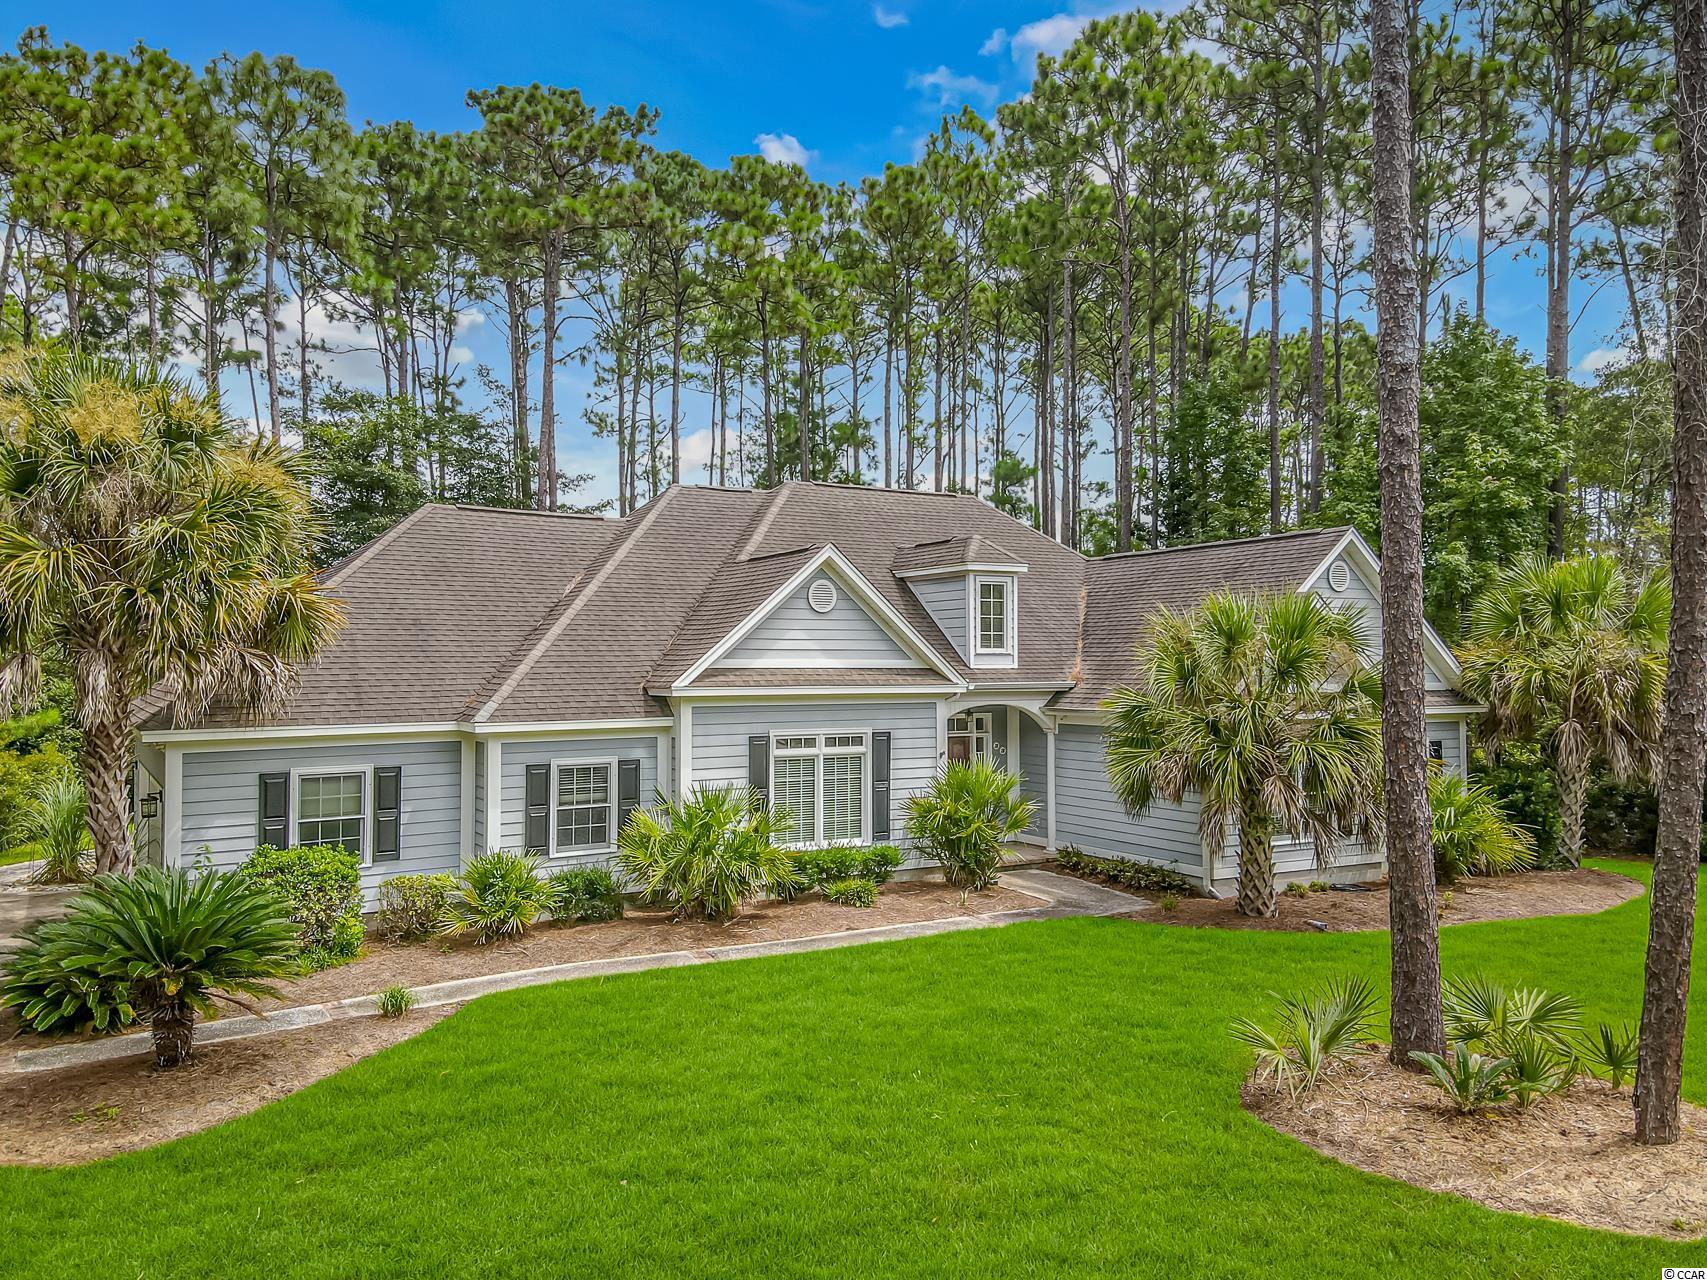 RARE opportunity alert! Here is your chance to own a home on a FULL acre of land with NO HOA in the heart of Pawleys Island on a cul-de-sac road with only 4 homes total ! Situated minutes from Pawleys Island beaches and a stones throw from the Hagley public boat landing this location is the perfect spot to enjoy all the area has to offer. Adorned with Hardi Plank siding and an attention grabbing front door you are going to like what you see upon pulling up to your new home.  Inside the home you will enjoy plenty of space for whatever your needs may be.  3 bedrooms plus a bonus loft, 2.5 bathrooms, a proper foyer, living room with gas fireplace, large eat-in kitchen with butler pantry, formal dining room, walk-in attic and walk-in laundry room make up the interior spaces of the home. Additionally the home is wired with security cameras for those who appreciate the extra piece of mind.  On the outside you will find a covered patio, accented by a paver walkway leading to the double bay side load garage.  The outside is rounded out with mature landscaping which provides just the right amount of privacy. Get this one on your list to see immediately!